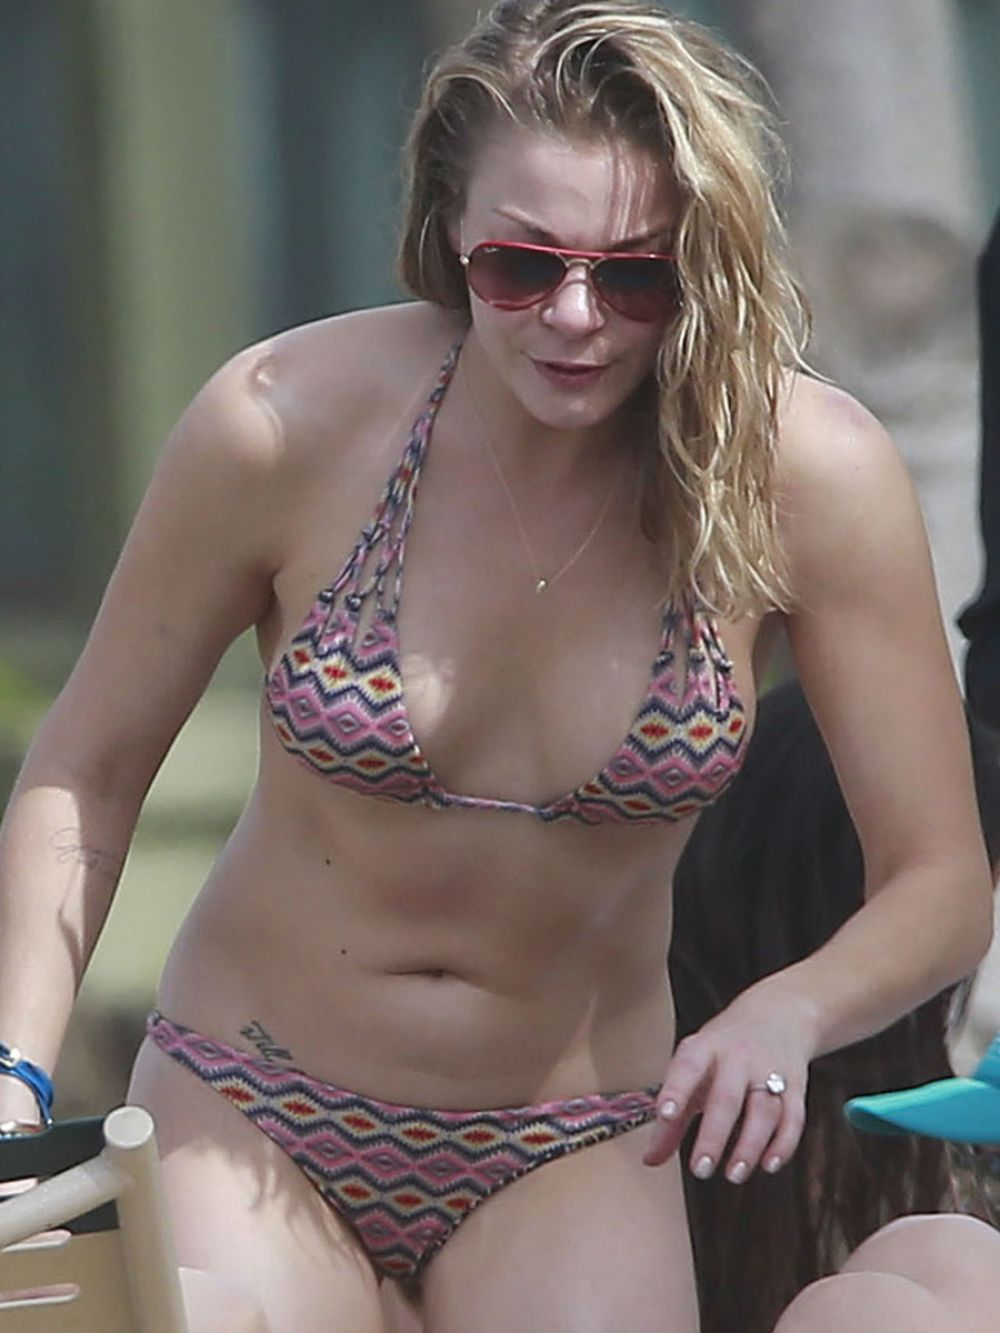 LEANN RIMES in Bikini at a Beach in Hawaii - HawtCelebs - HawtCelebs: www.hawtcelebs.com/leann-rimes-in-bikini-at-a-beach-in-hawaii